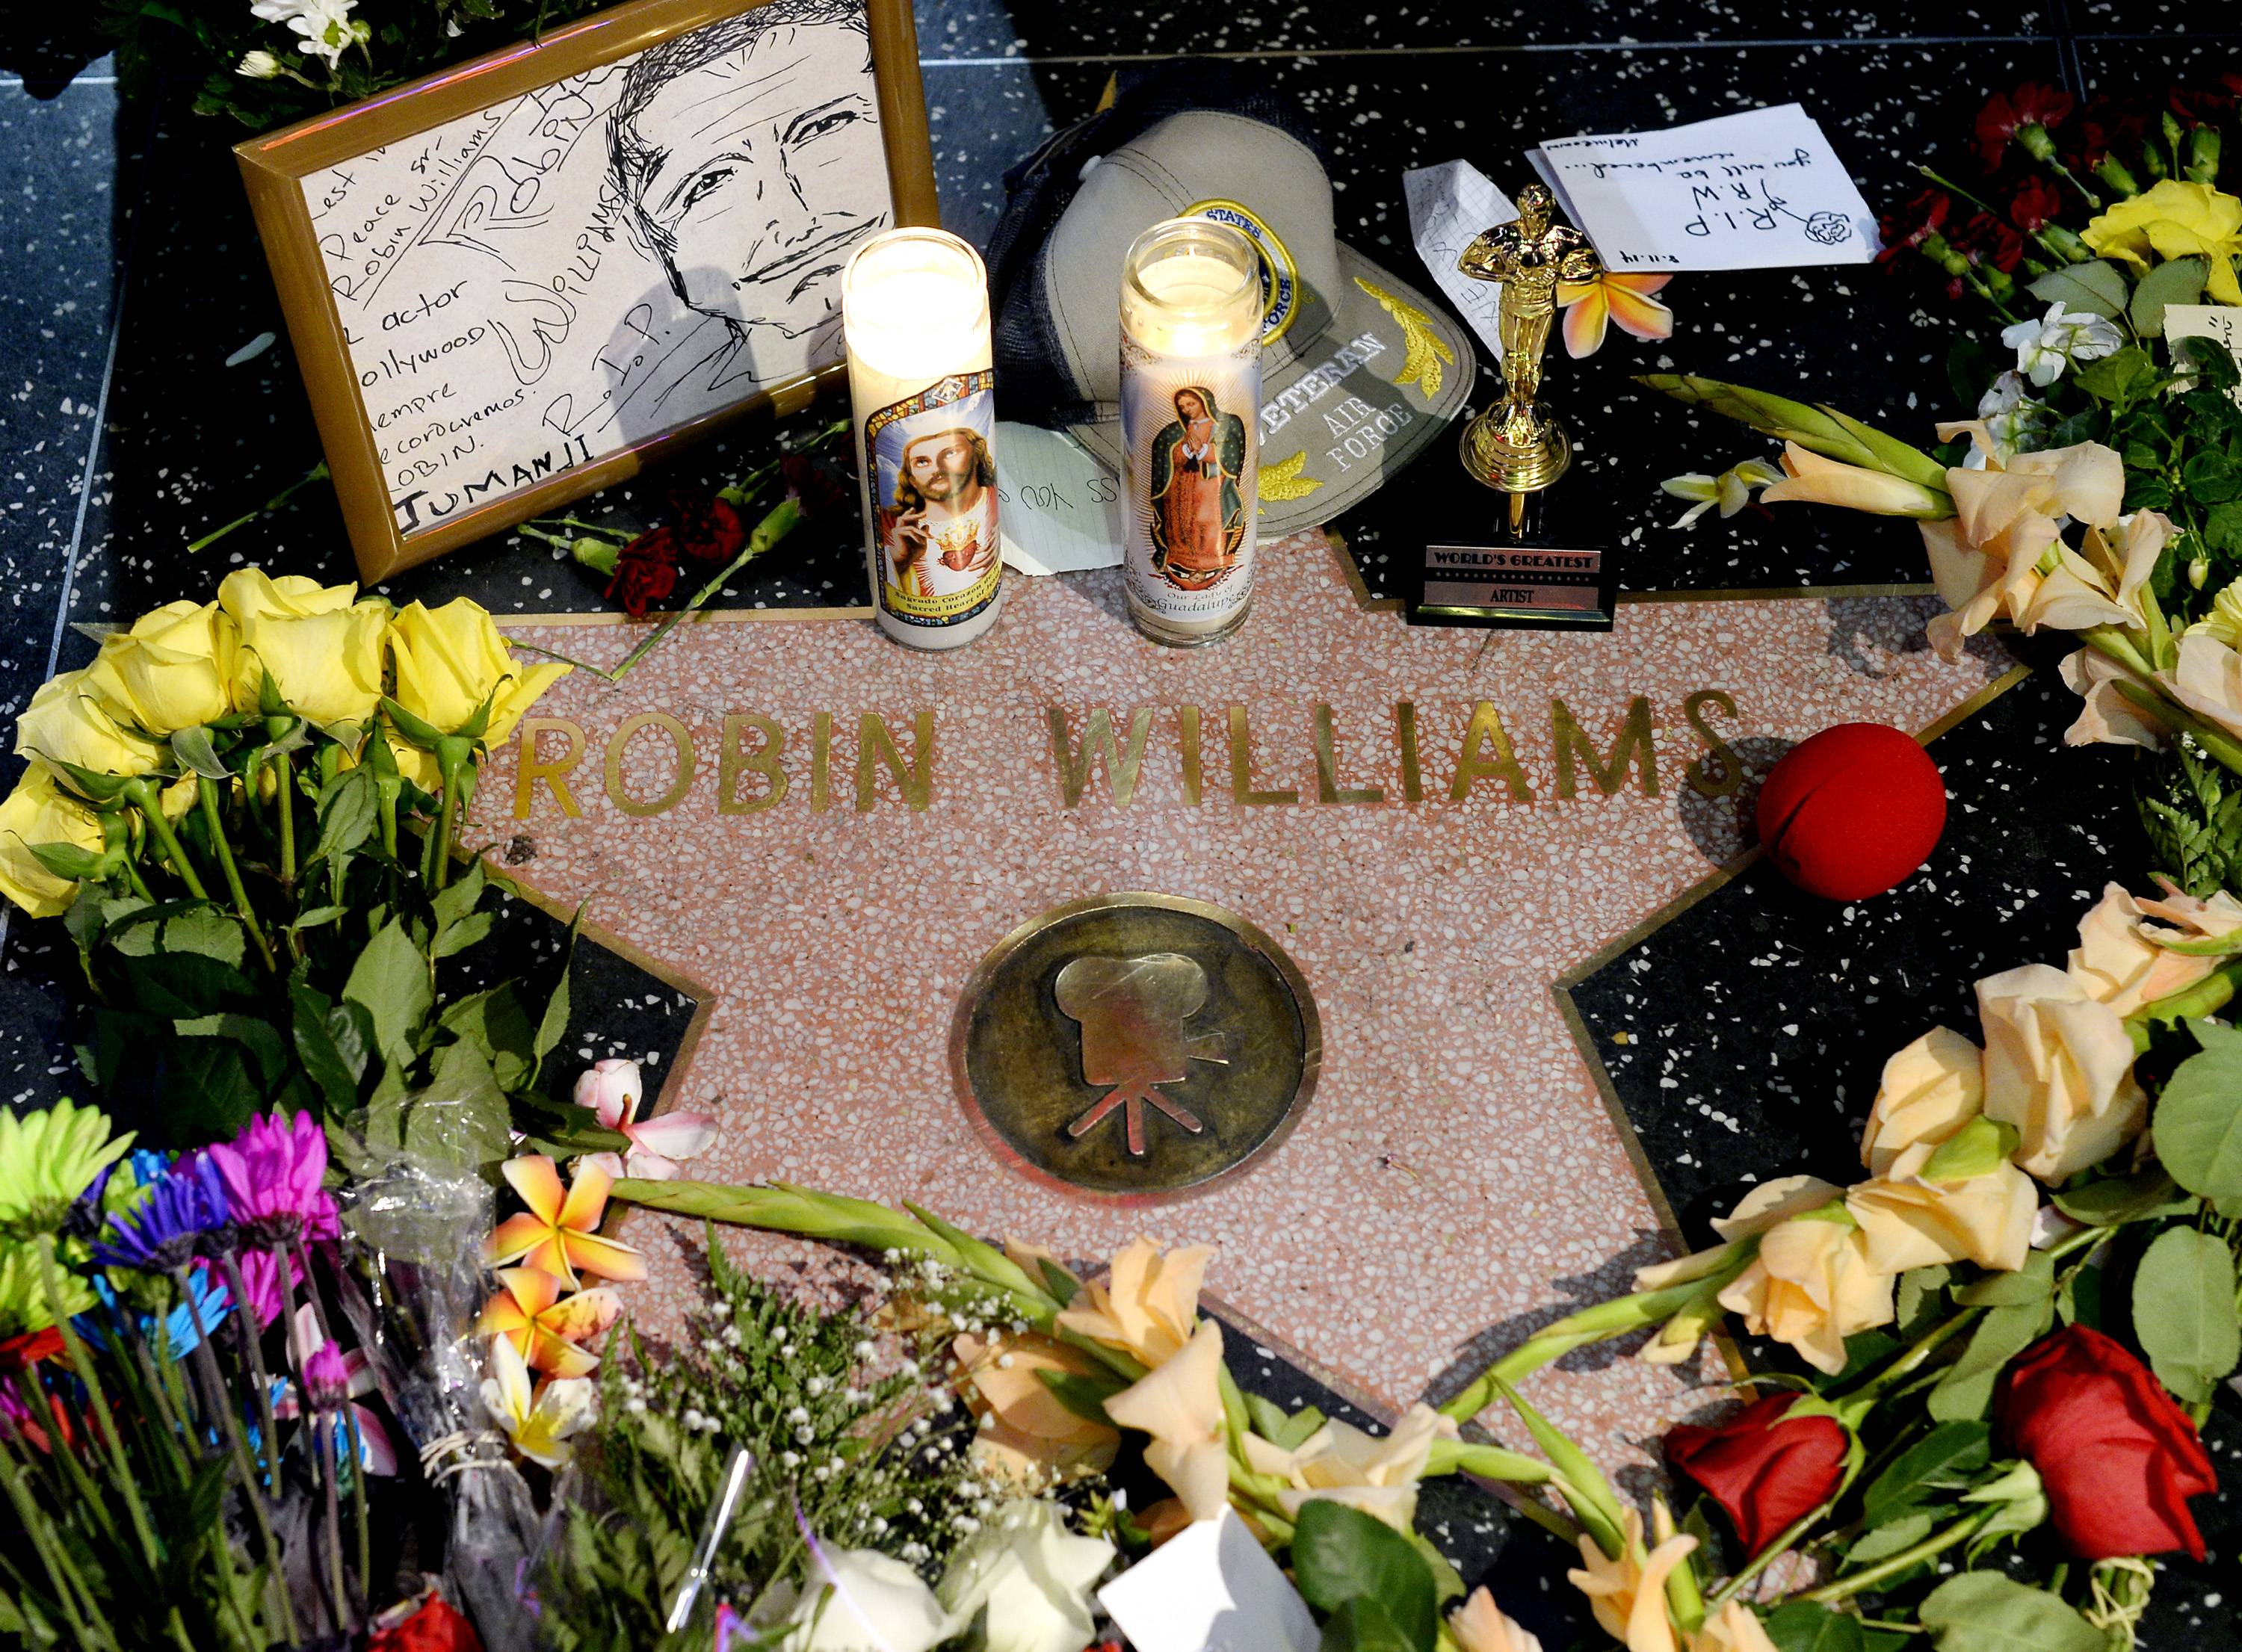 Flowers were placed in memory of actor/comedian Robin Williams on his Walk of Fame star in the Hollywood district of Los Angeles Monday, the day the actor/comedian died in an apparent suicide. He was 63.